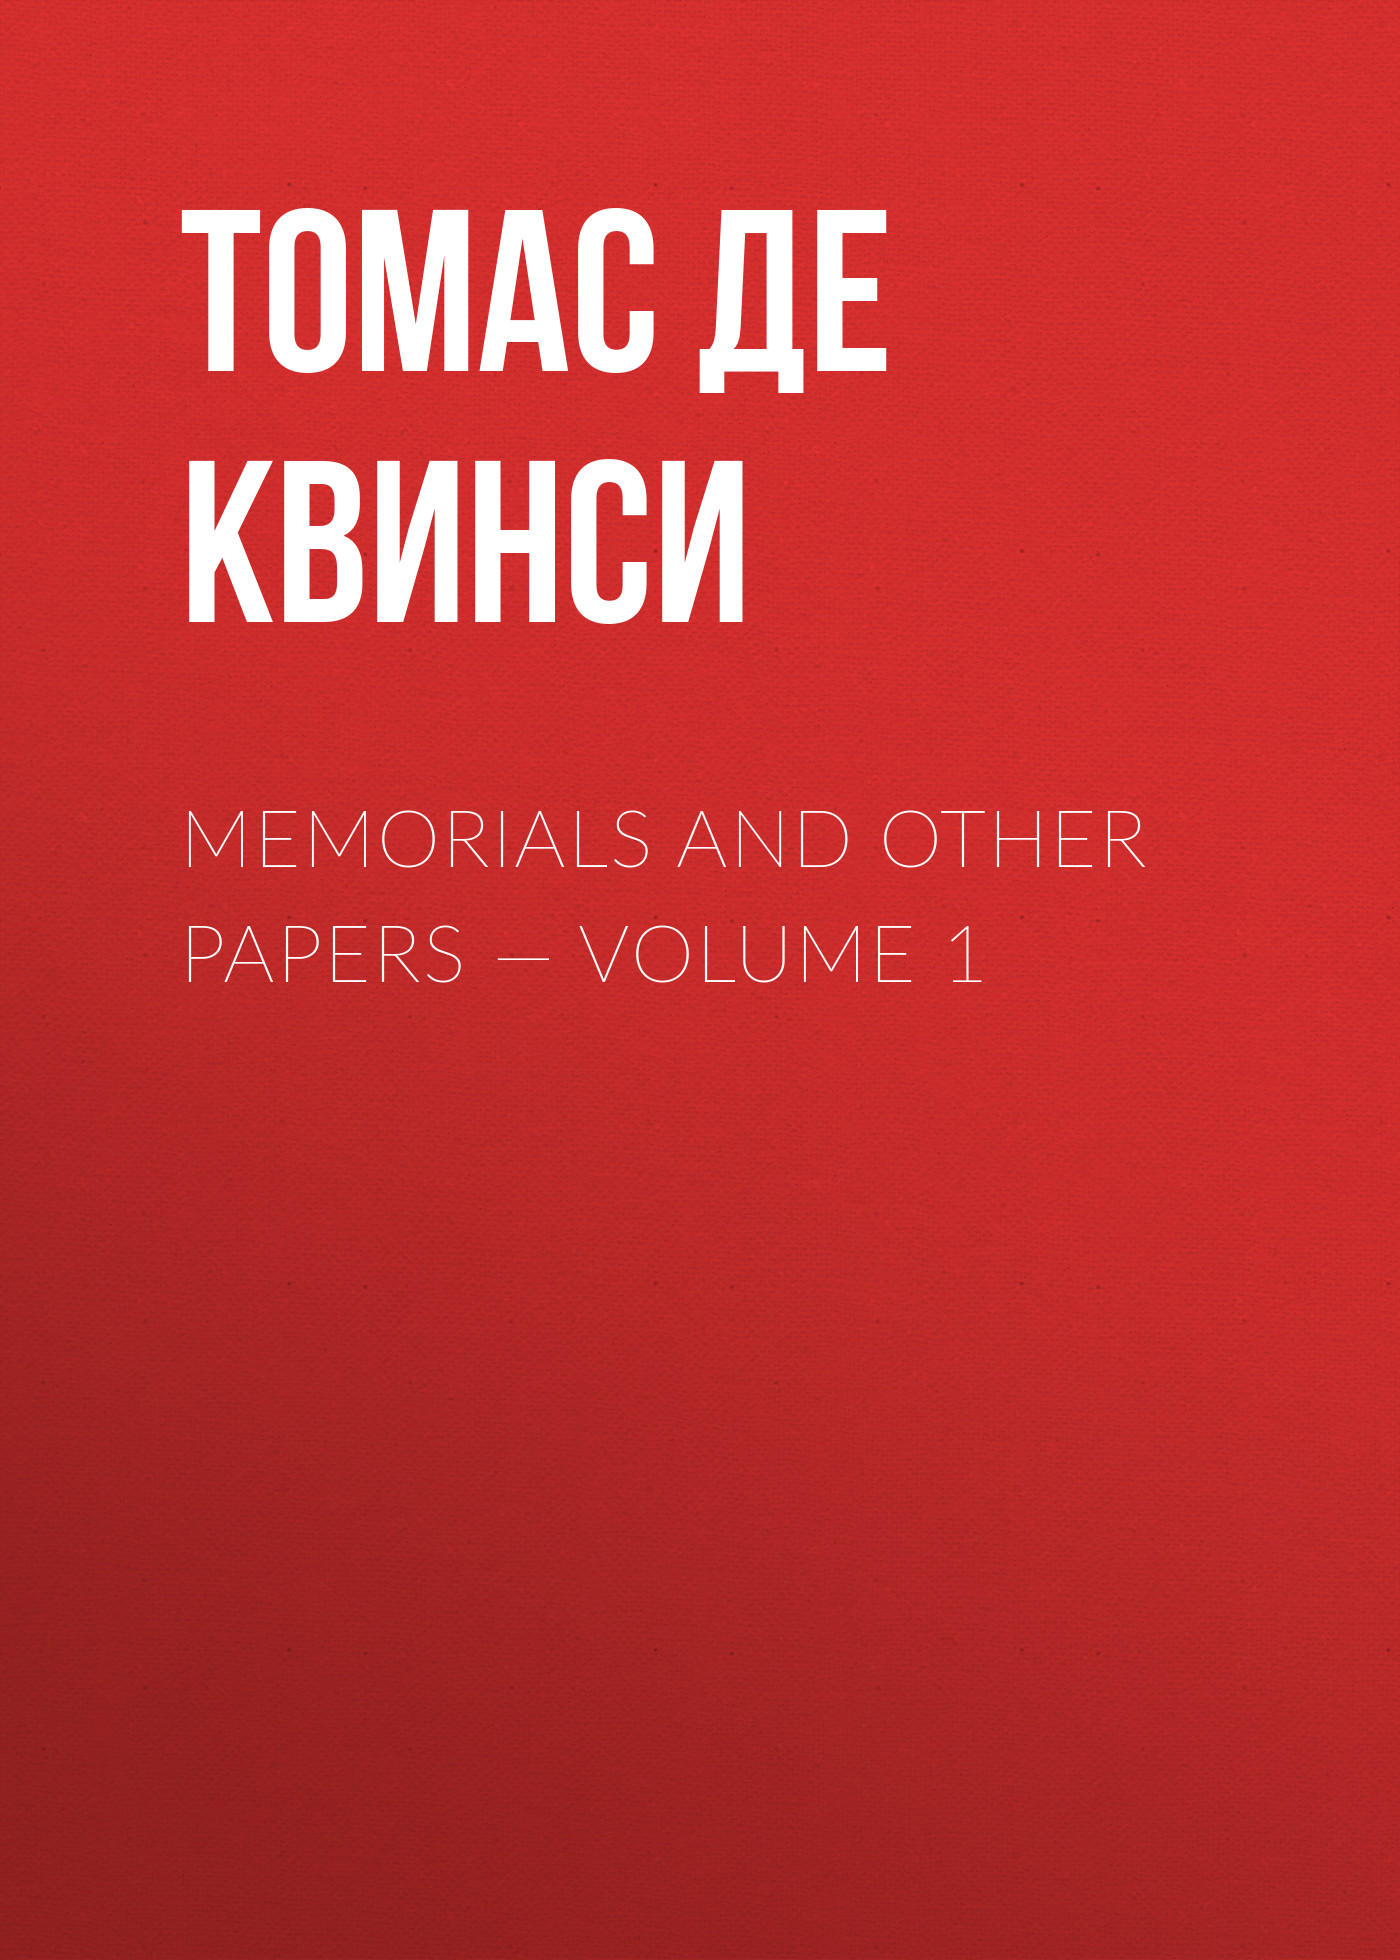 Фото - Томас де Квинси Memorials and Other Papers — Volume 1 j b mozley lectures and other theological papers